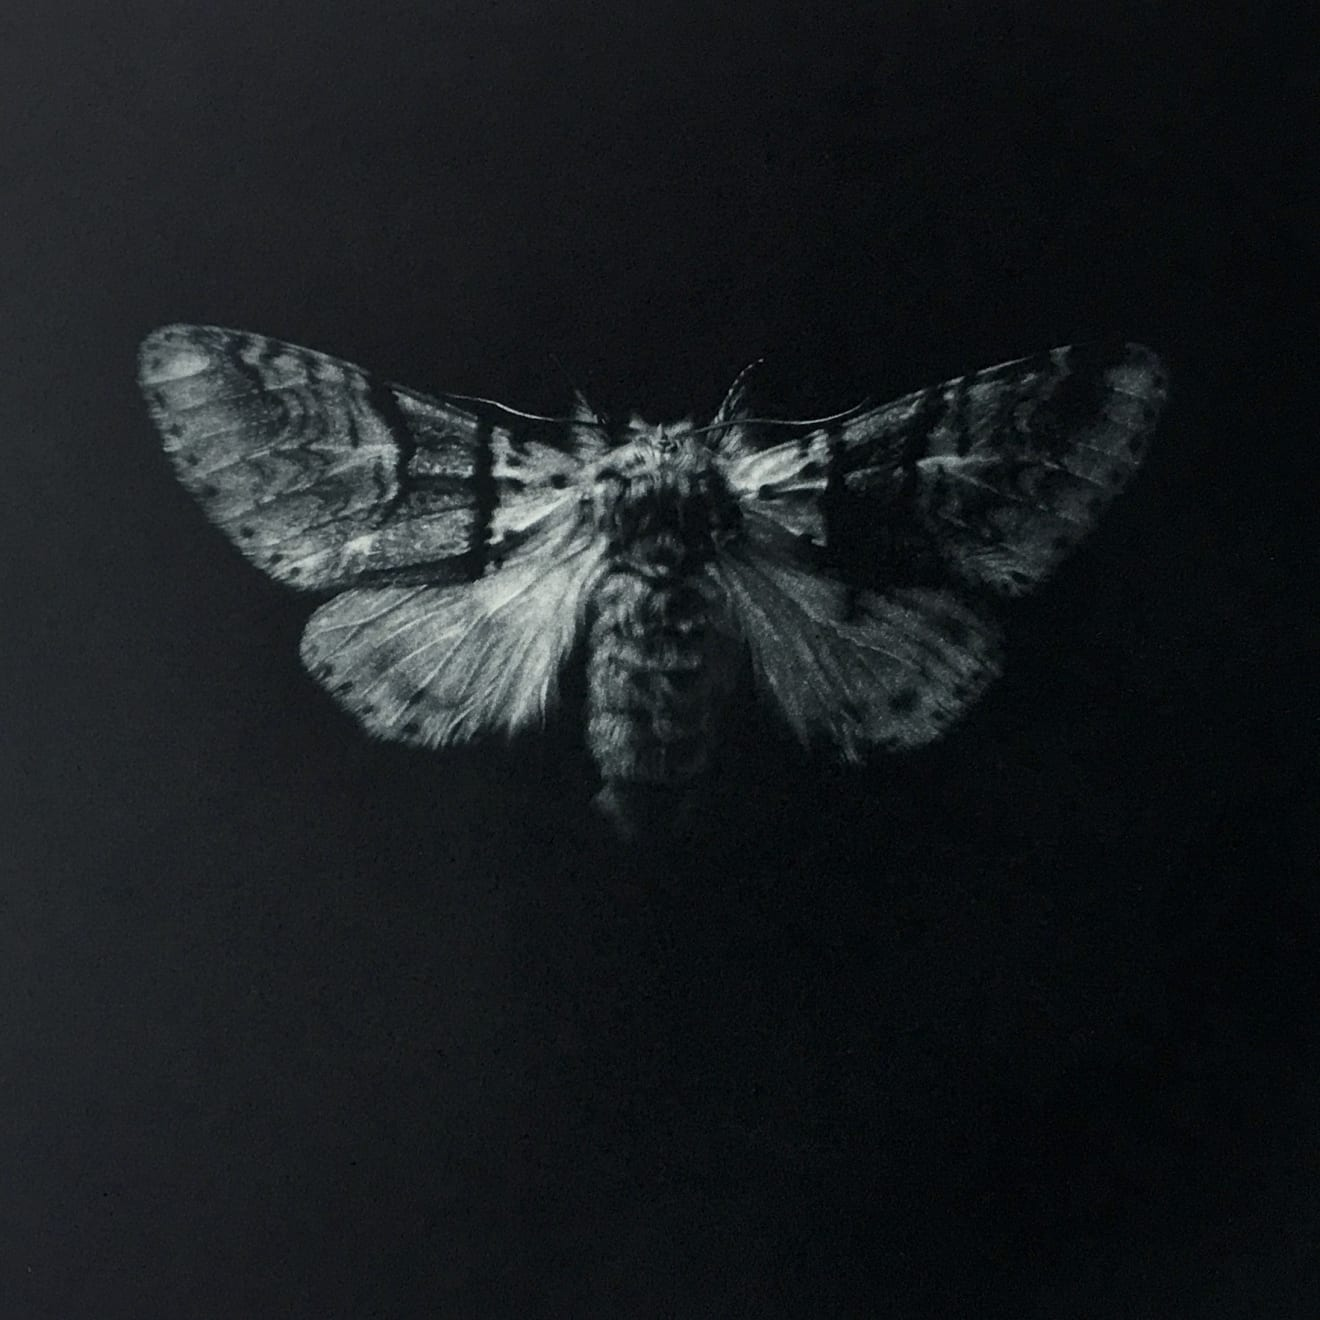 Sarah Gillespie, Sallow Kitten Moth , 2019